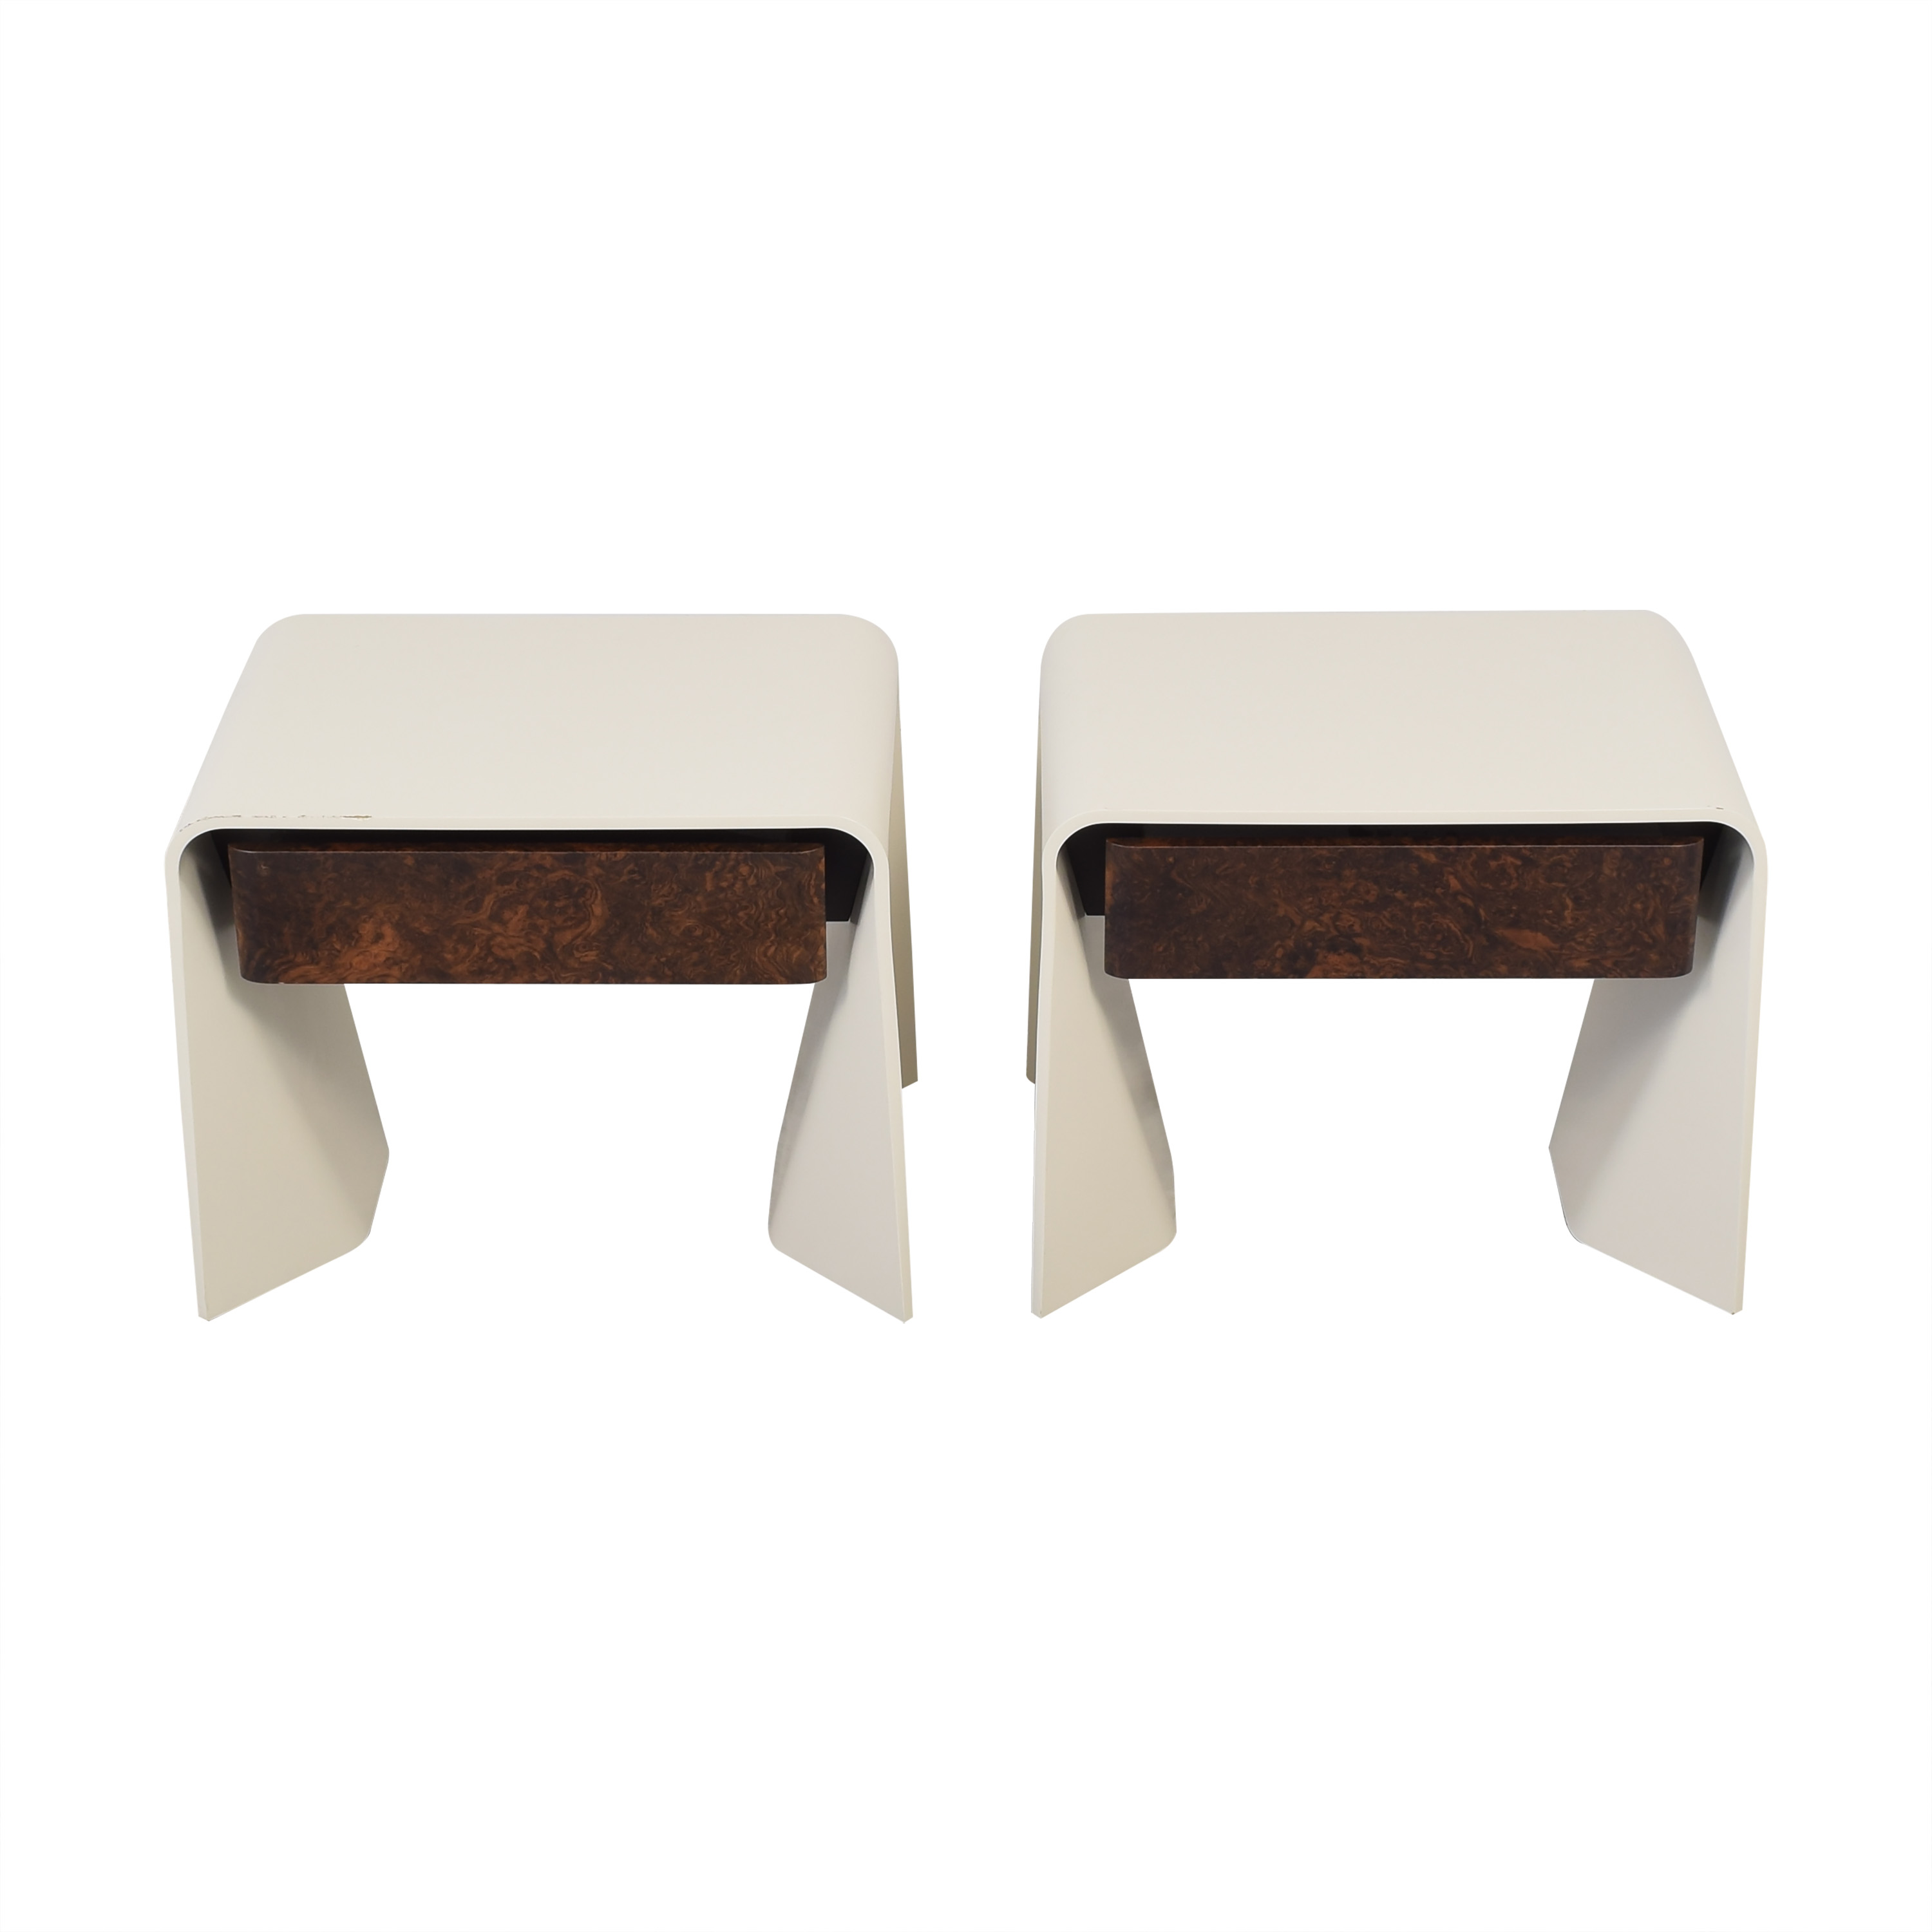 Donghia Donghia Tendu Leather End Tables Tables